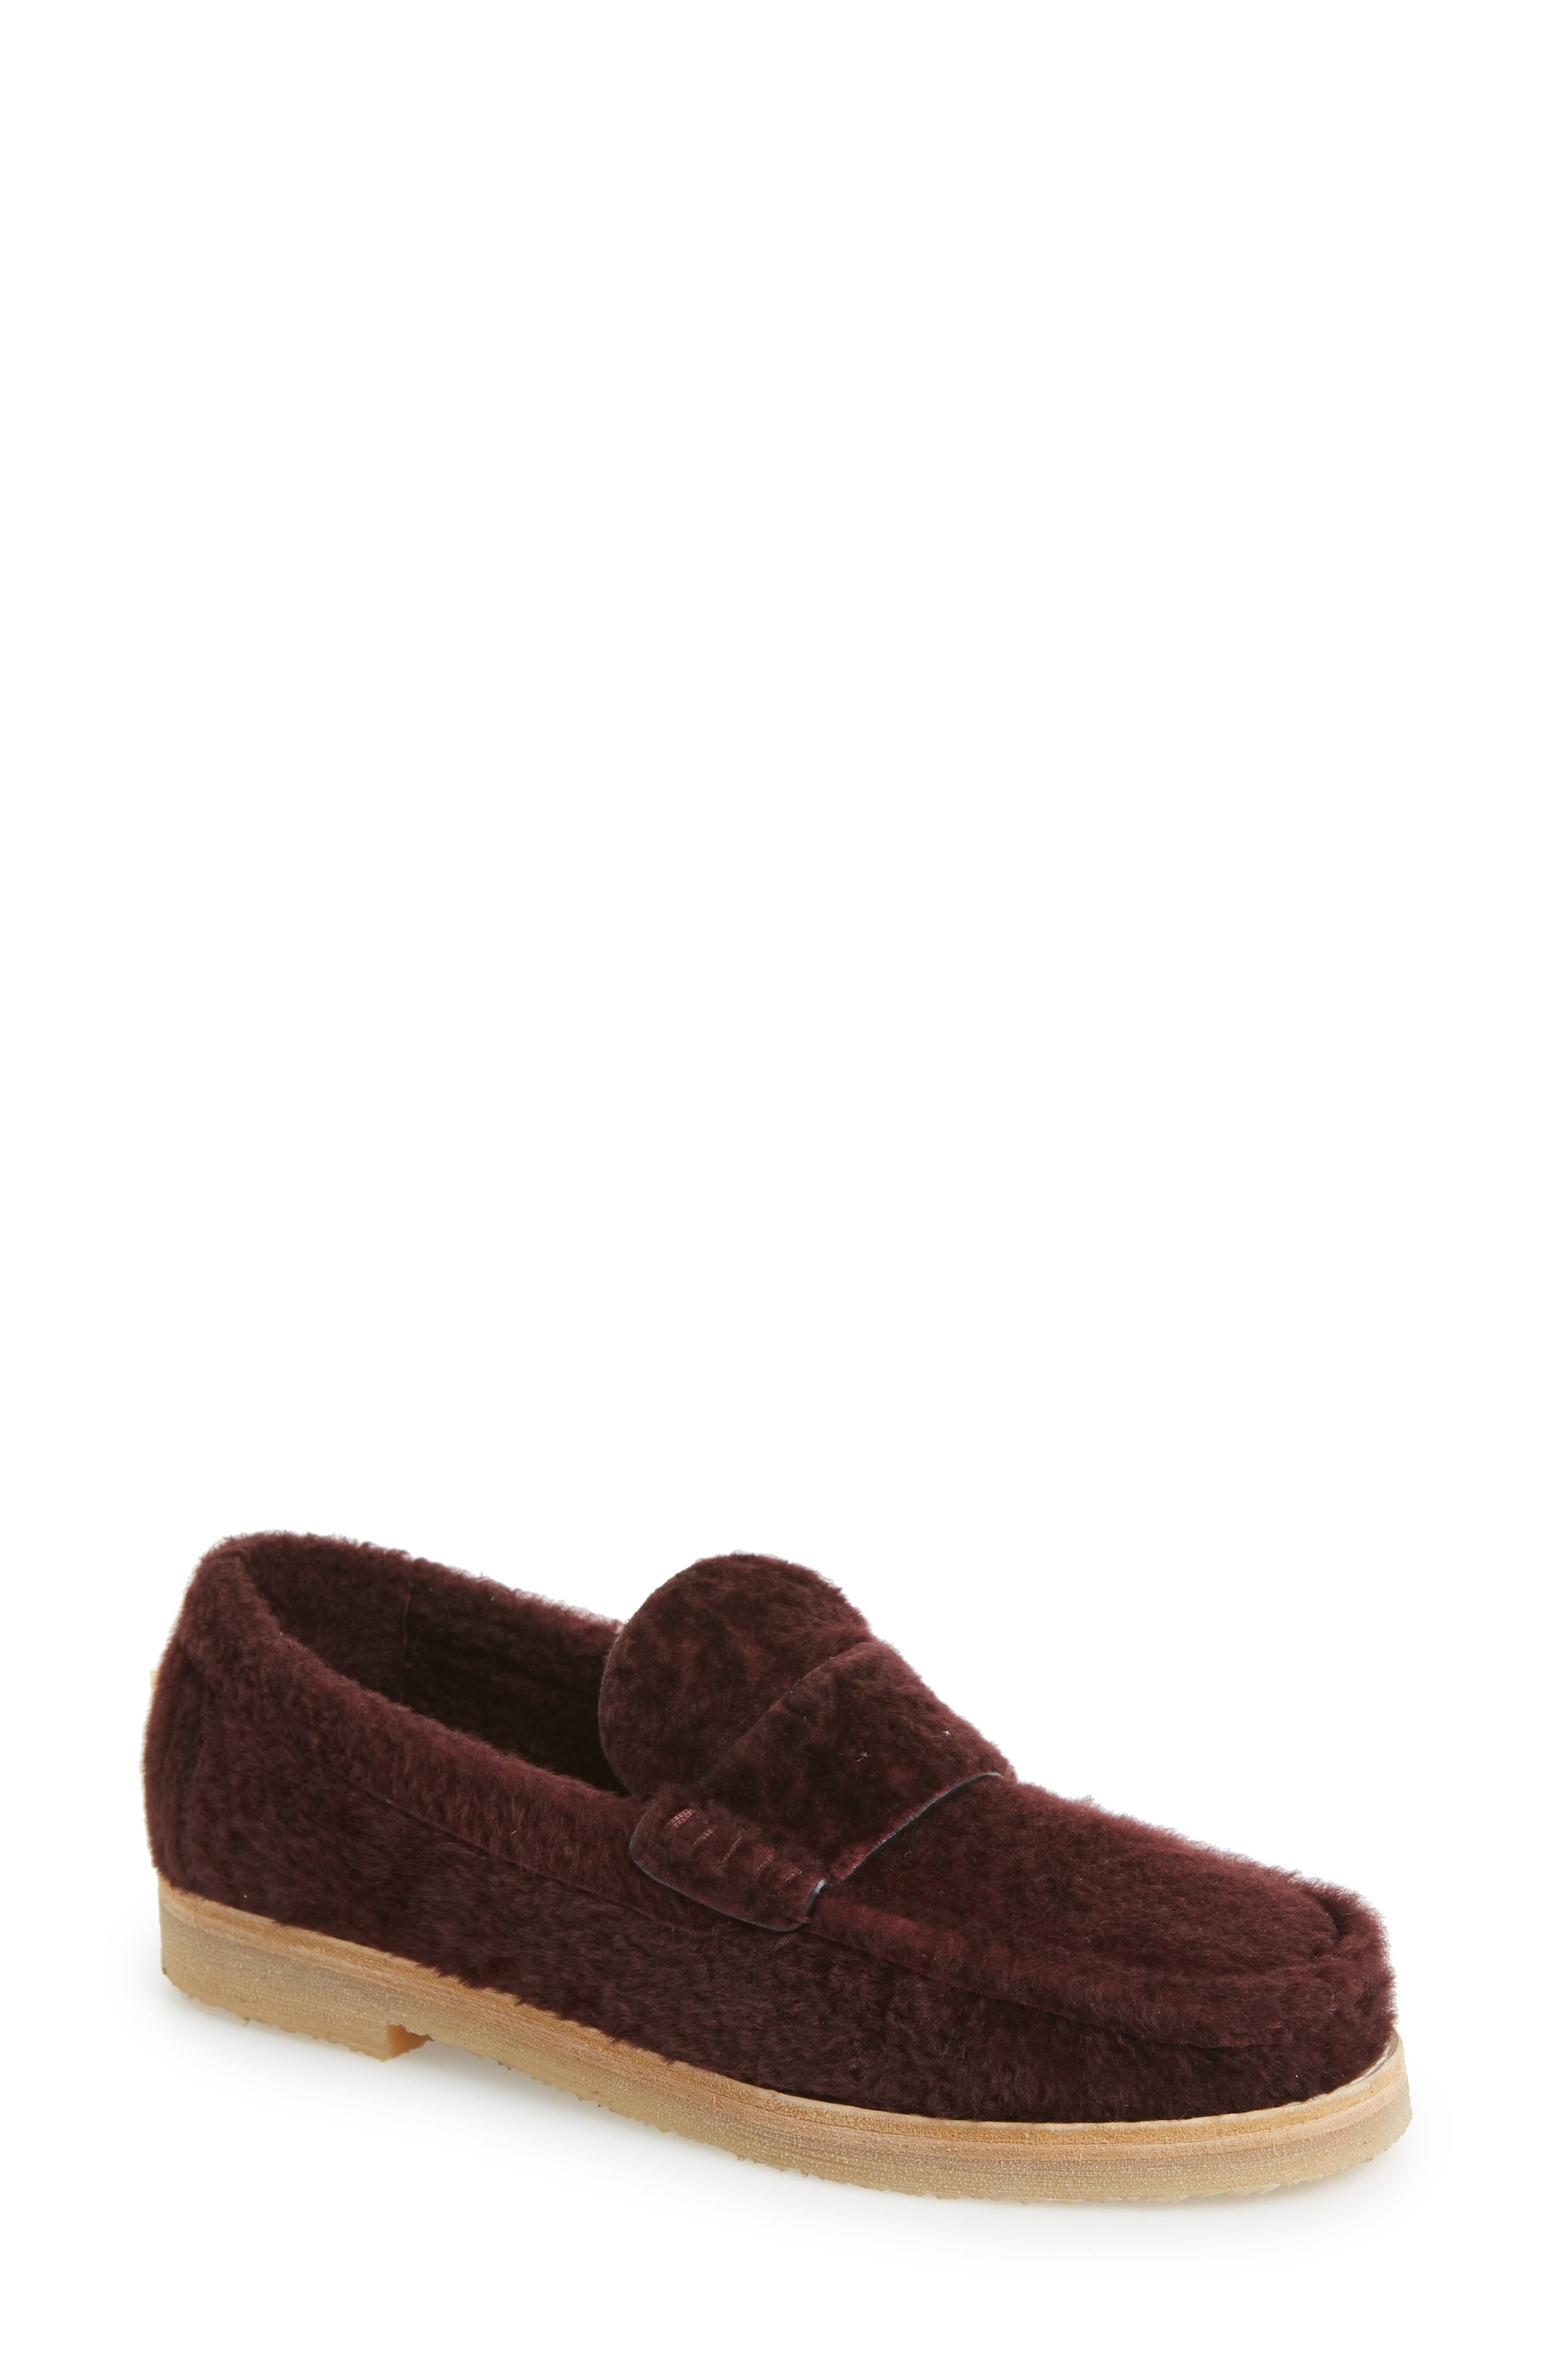 Stuart Weitzman Bromley Genuine Shearling Loafer, Red